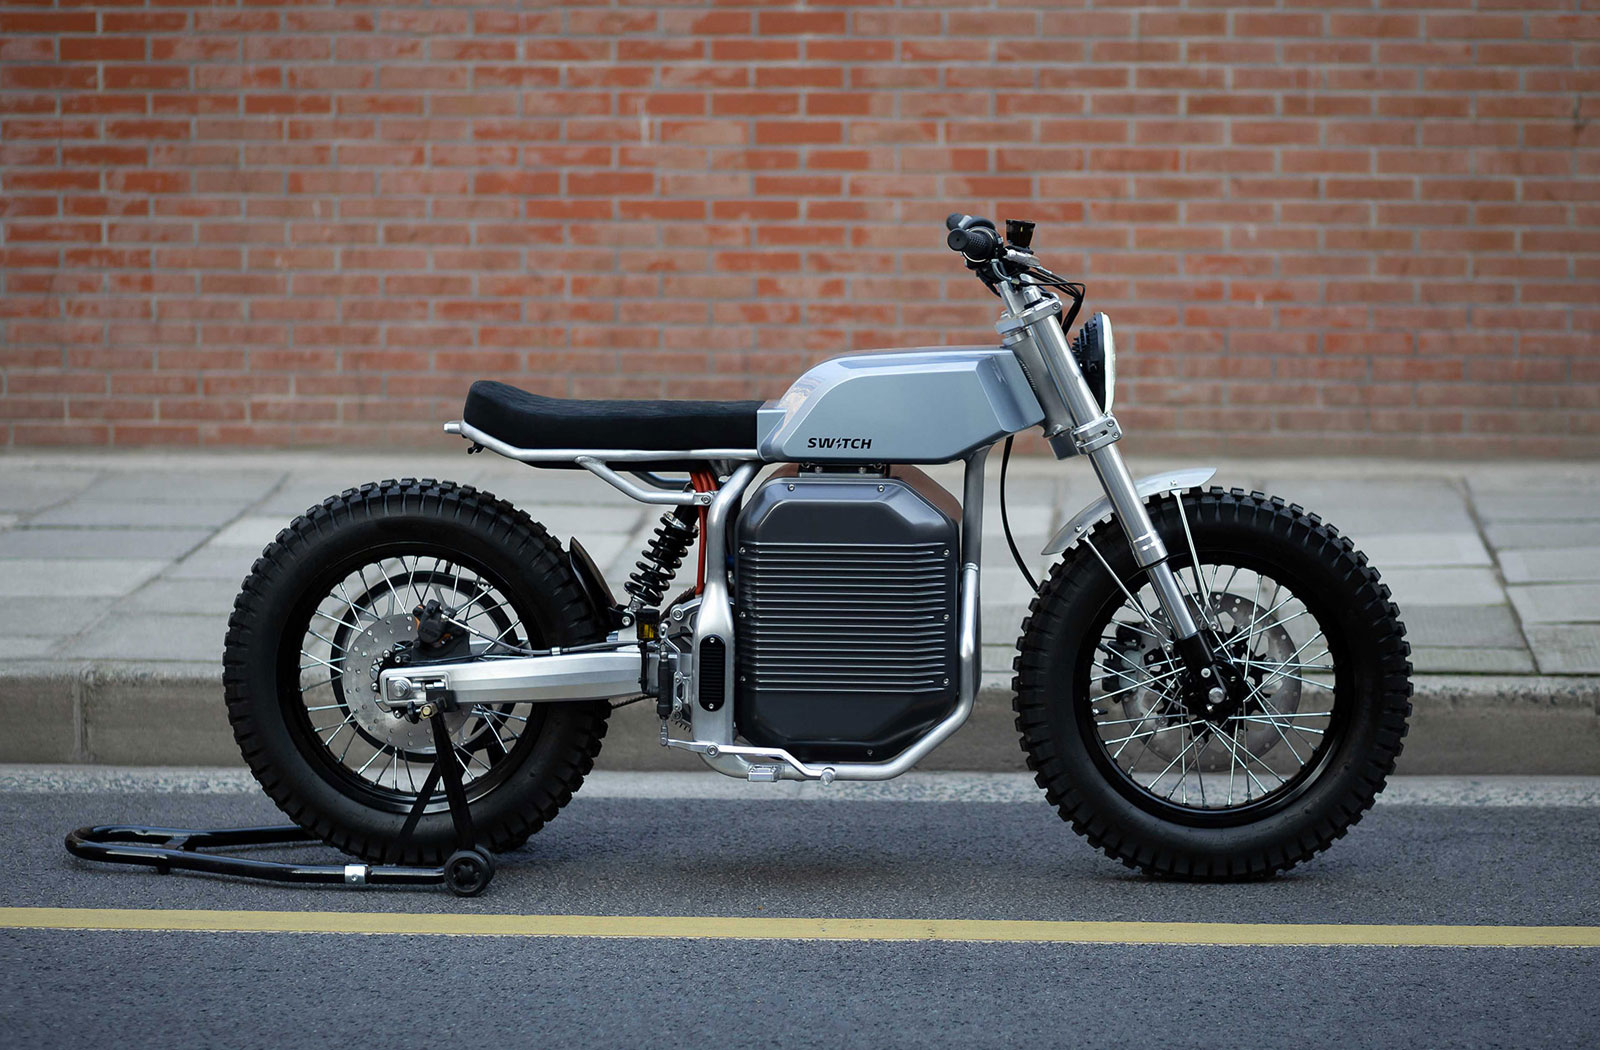 Switch eScrambler electric motorcycle from Shanghai